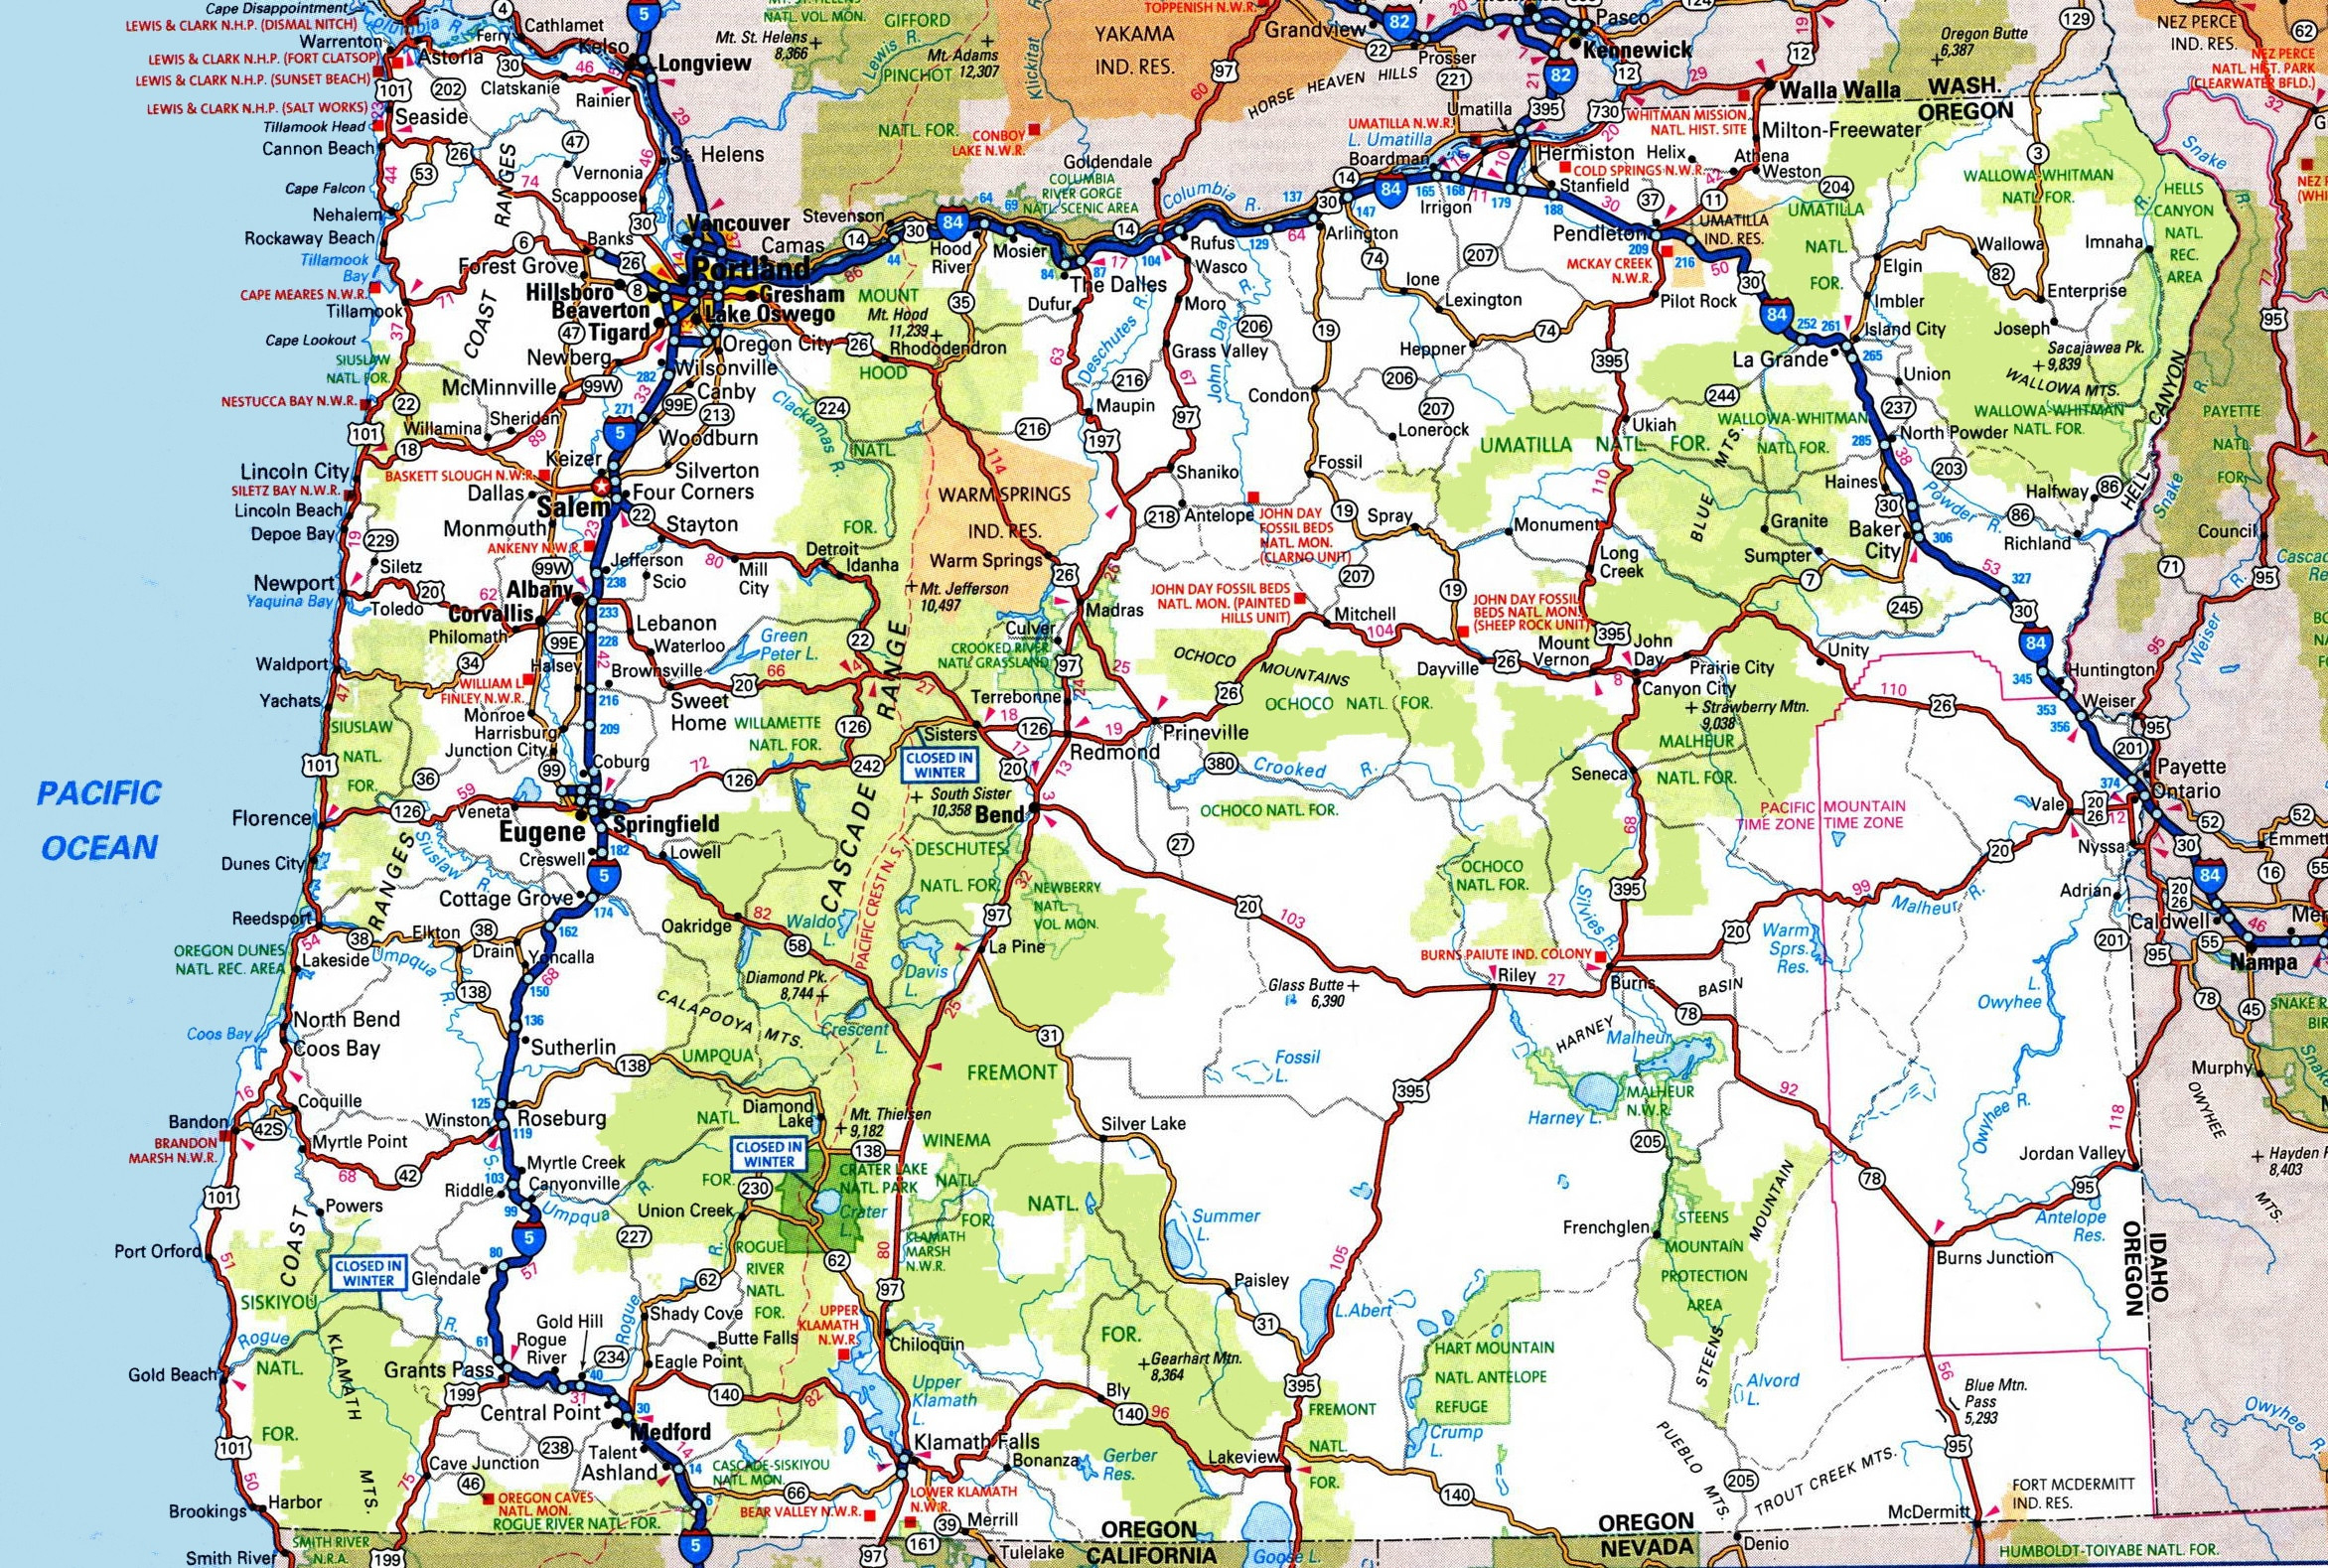 Road Map Of Southern Oregon And Northern California Valid Oregon - Road Map Of Southern Oregon And Northern California